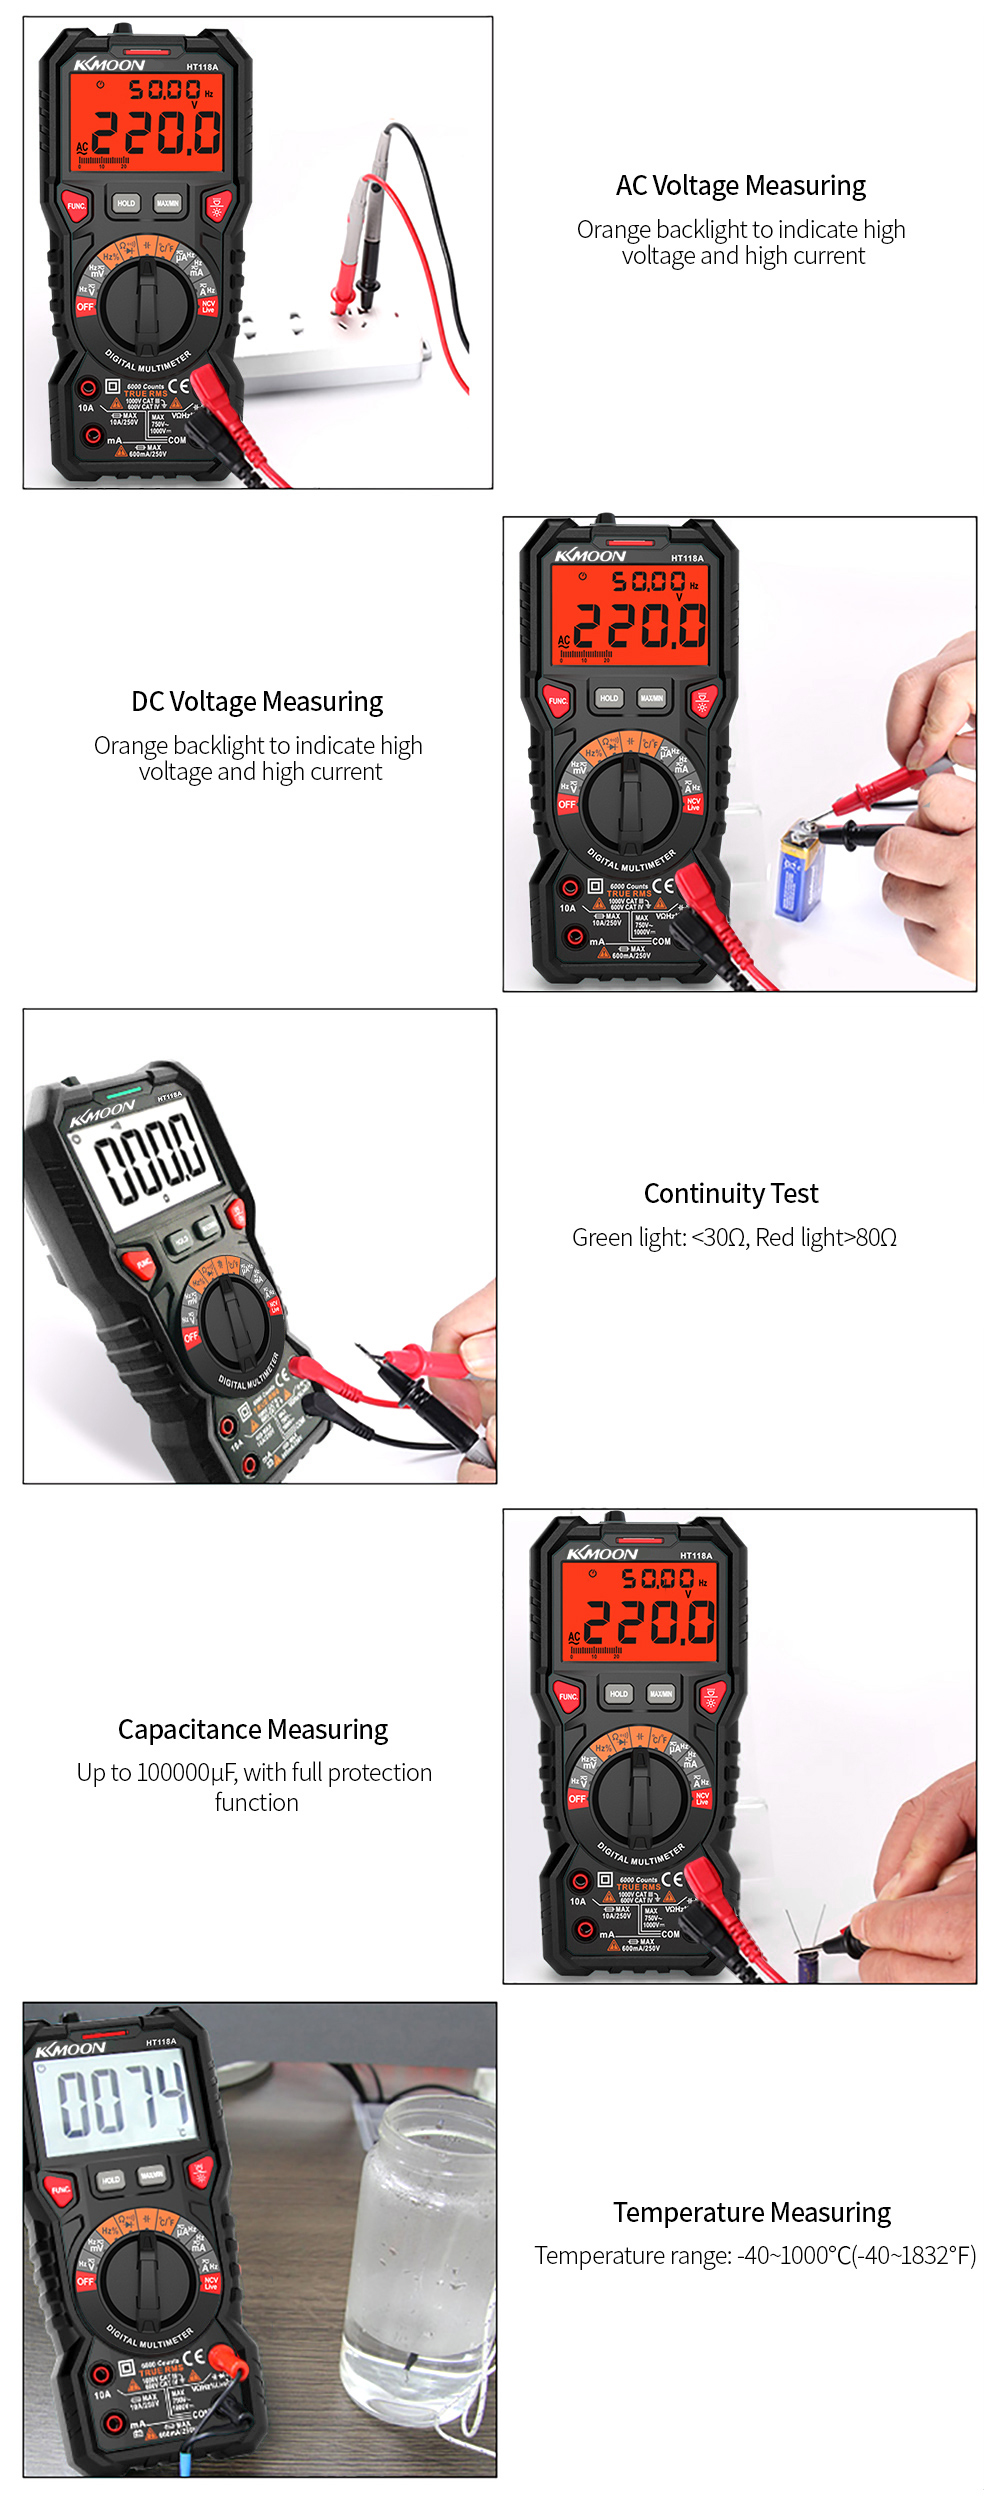 Tools : HT118A Multifunctional Digital Multimeter 6000 Counts True RMS Measuring Voltage Current Frequency Temperature NCV Test Diode